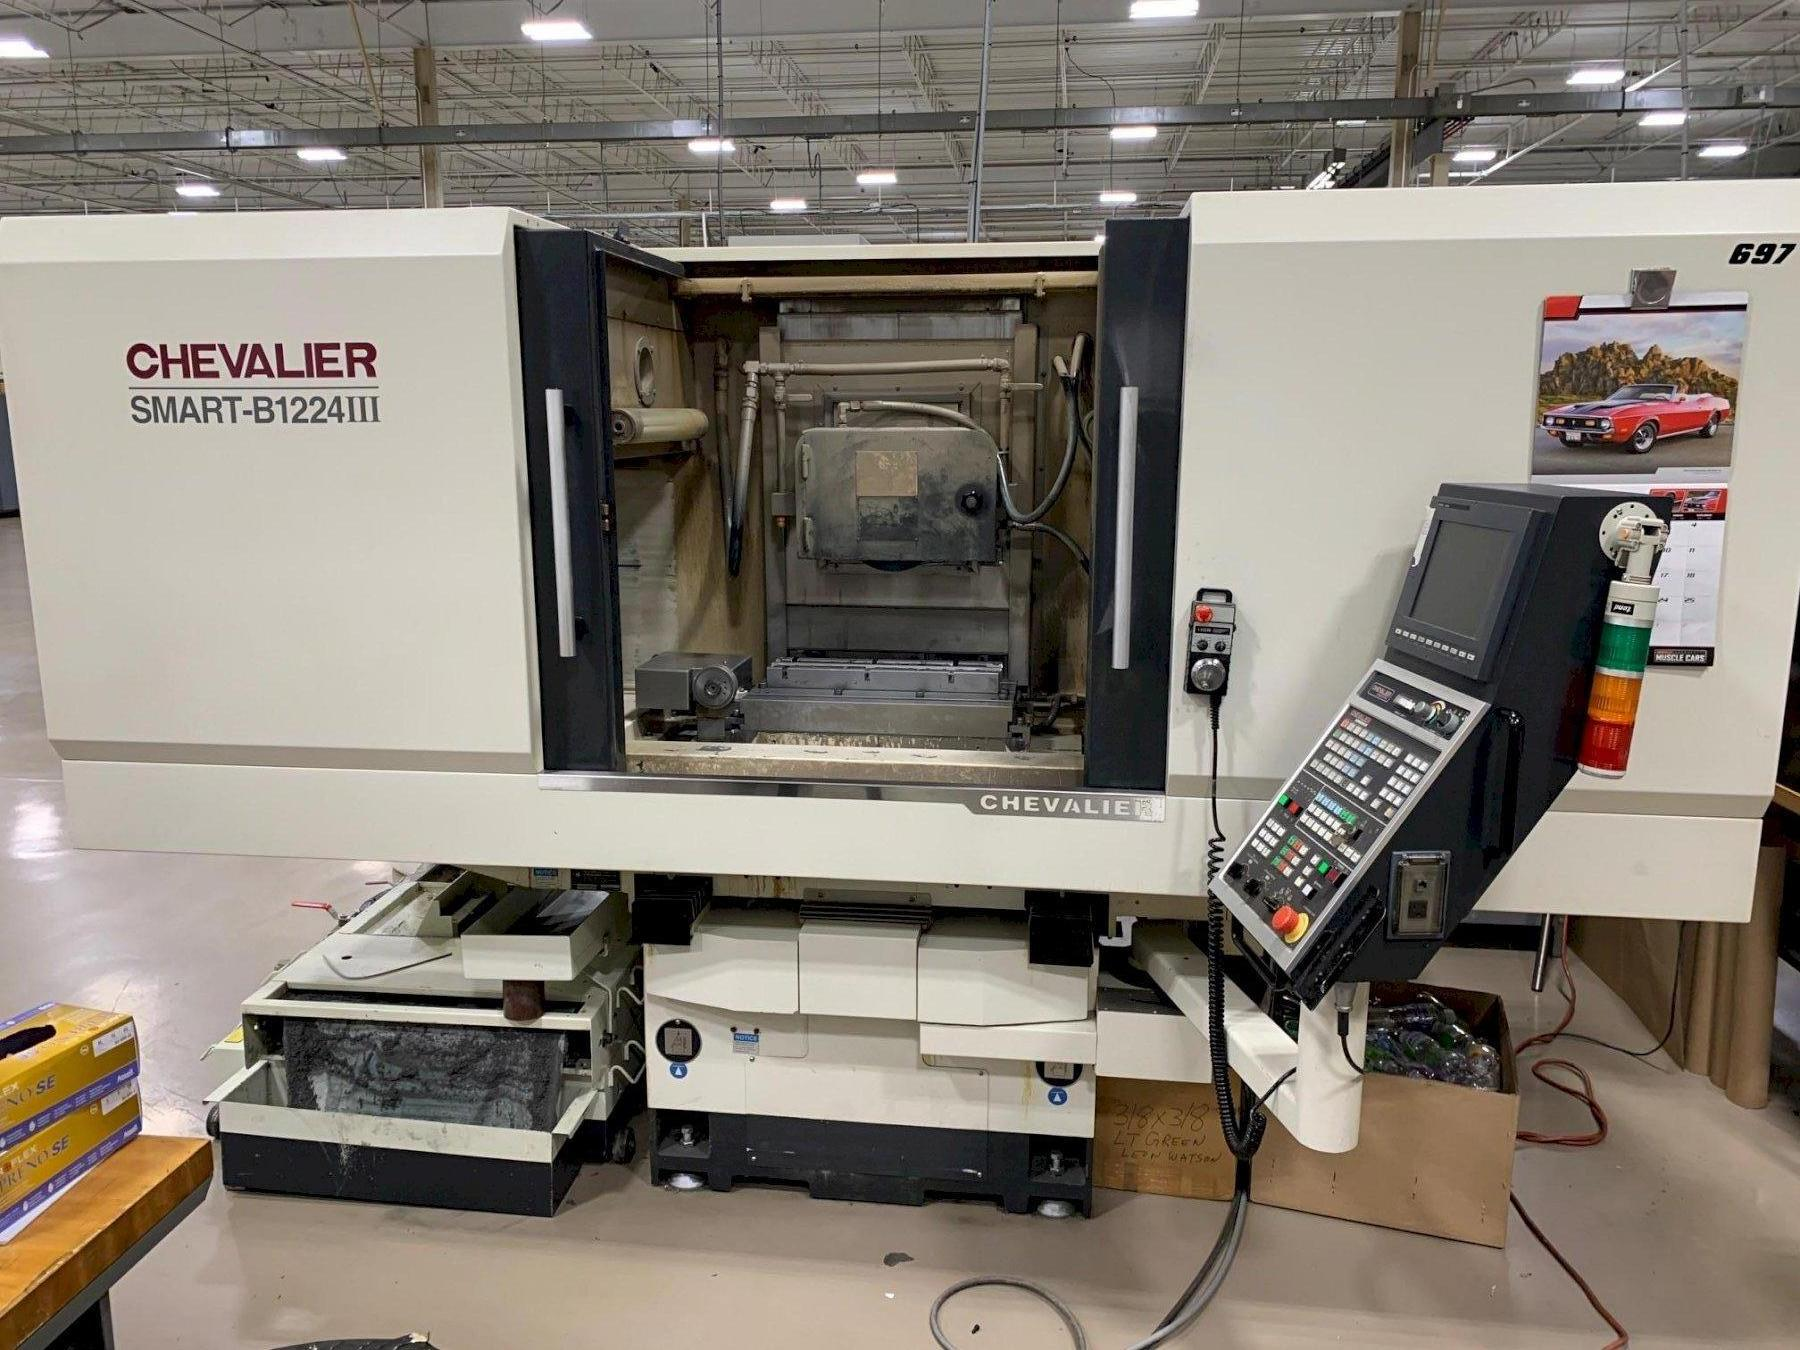 "12"" x 24"" CHEVALIER MODEL #SMART-B1224III CNC HYDRAULIC HORIZONTAL SURFACE GRINDER: STOCK 12745"